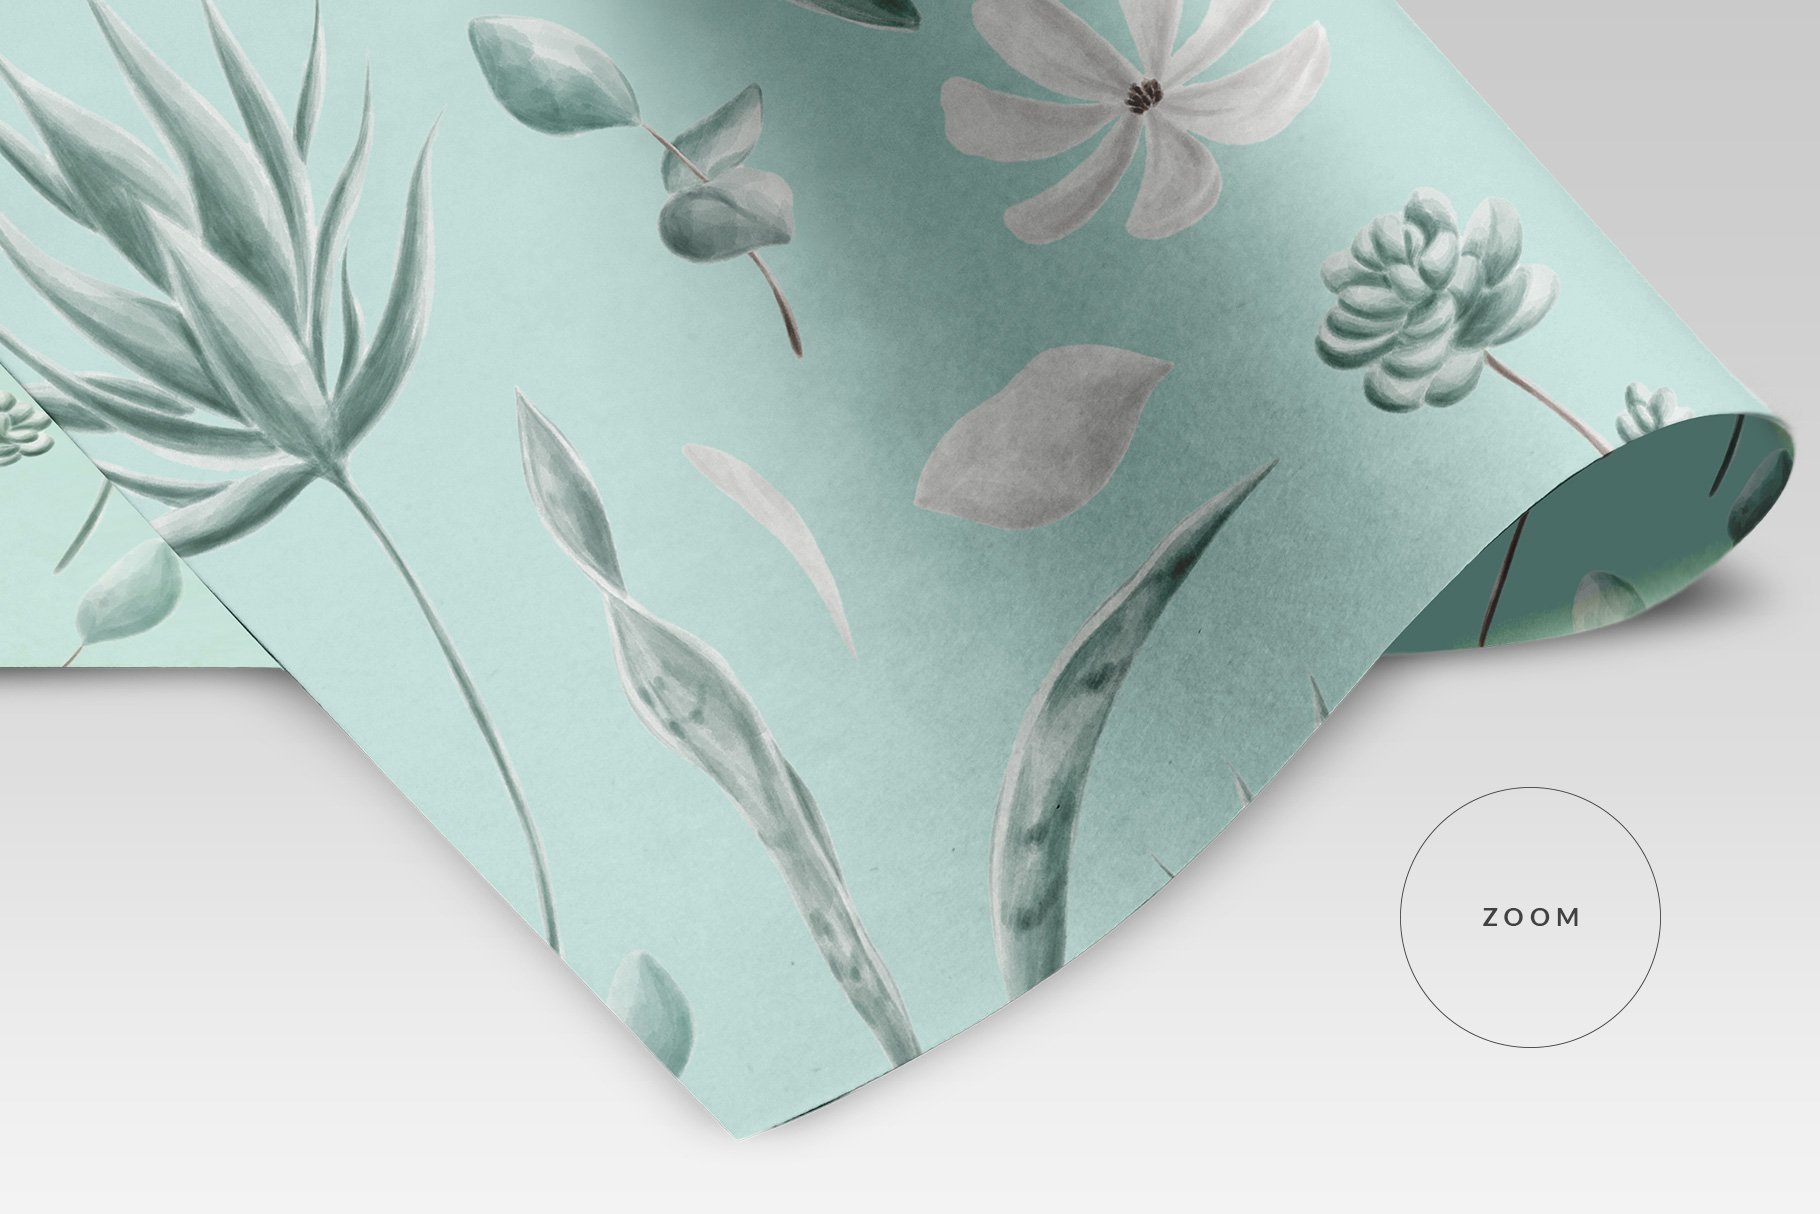 zoomed in image of the top view folded wrapping paper mockup